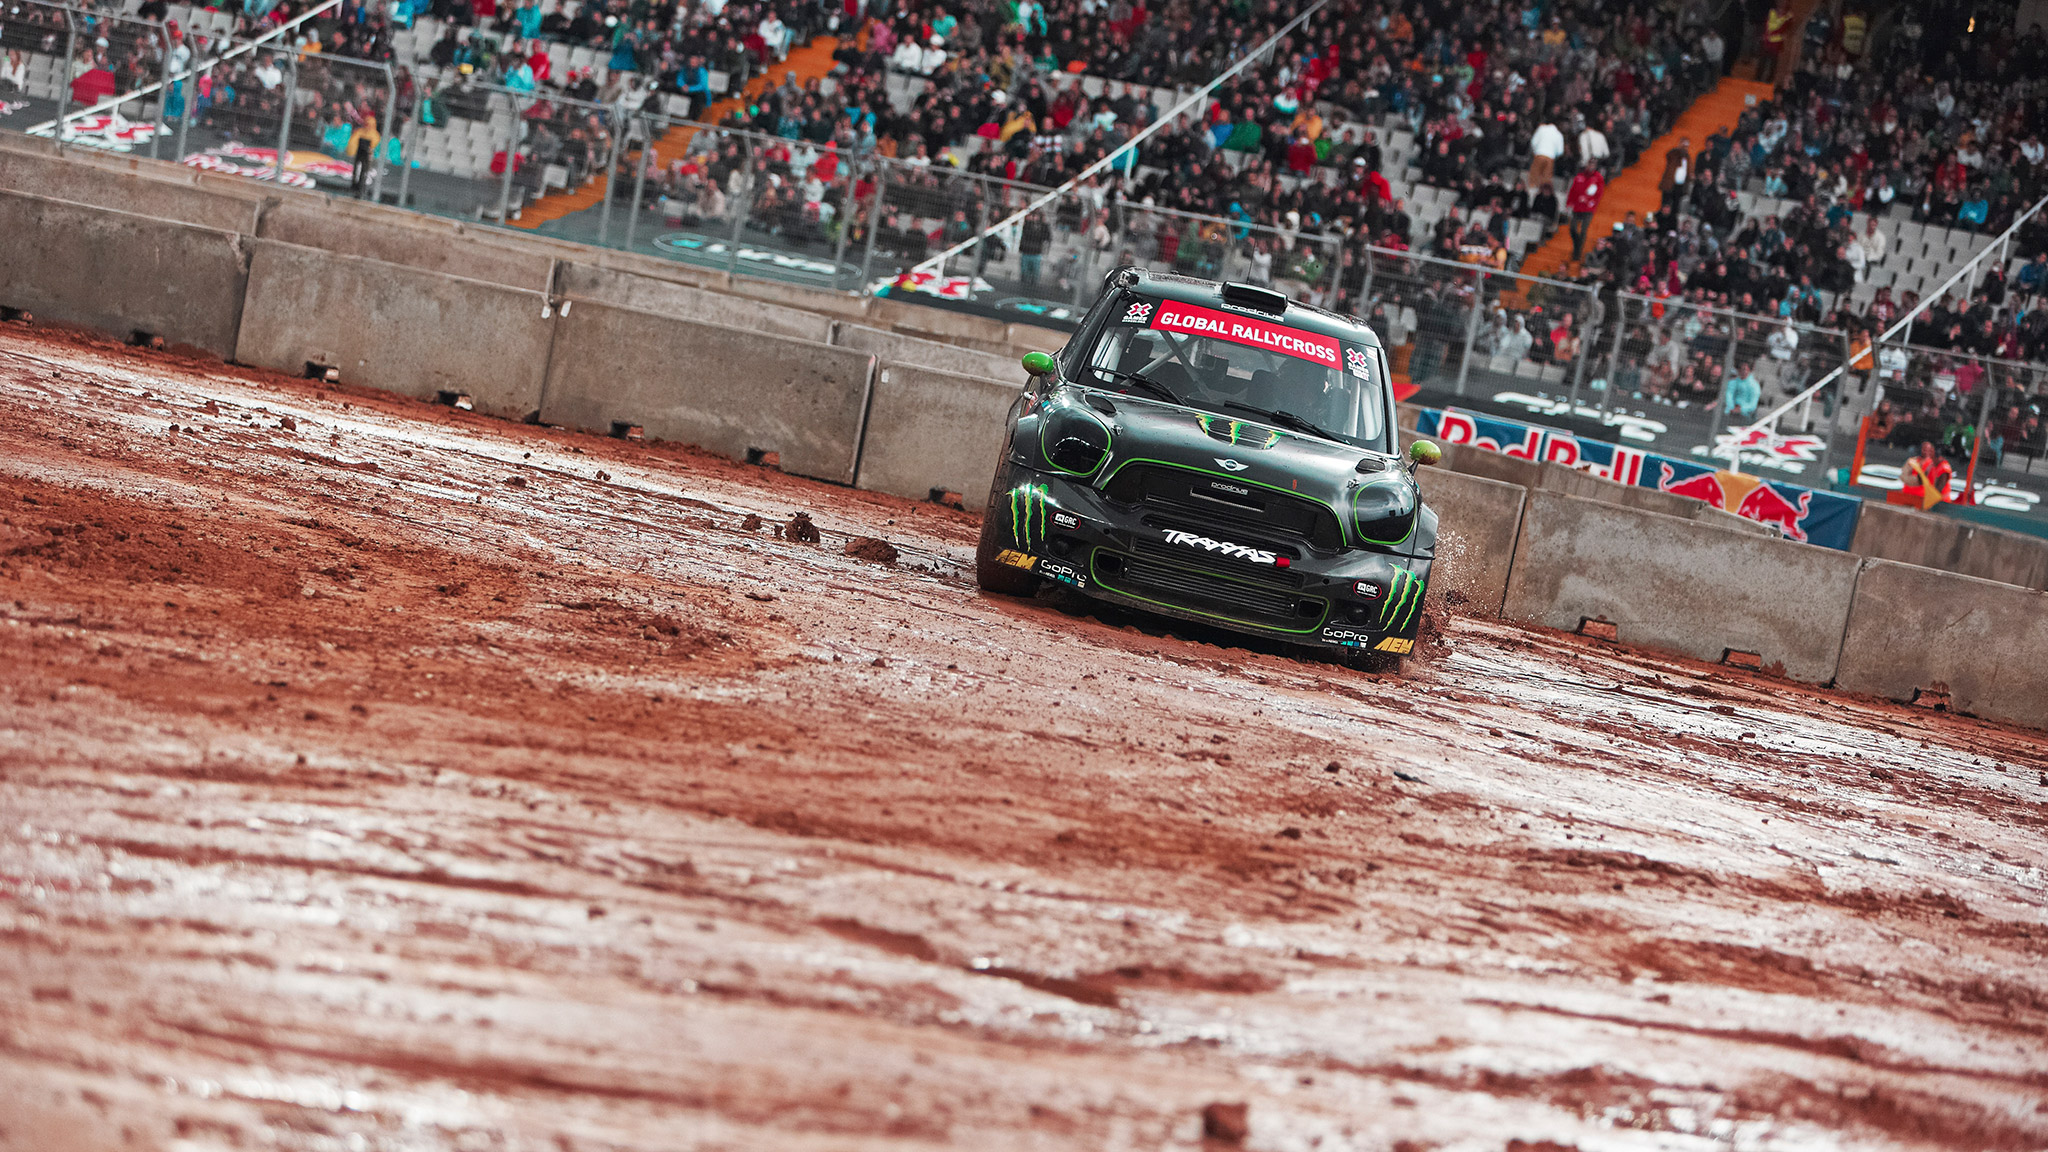 Days of rain saturated the RallyCross course at X Games Barcelona, causing the event to be cancelled. In Munich, X Games will host an additional RallyCross race.